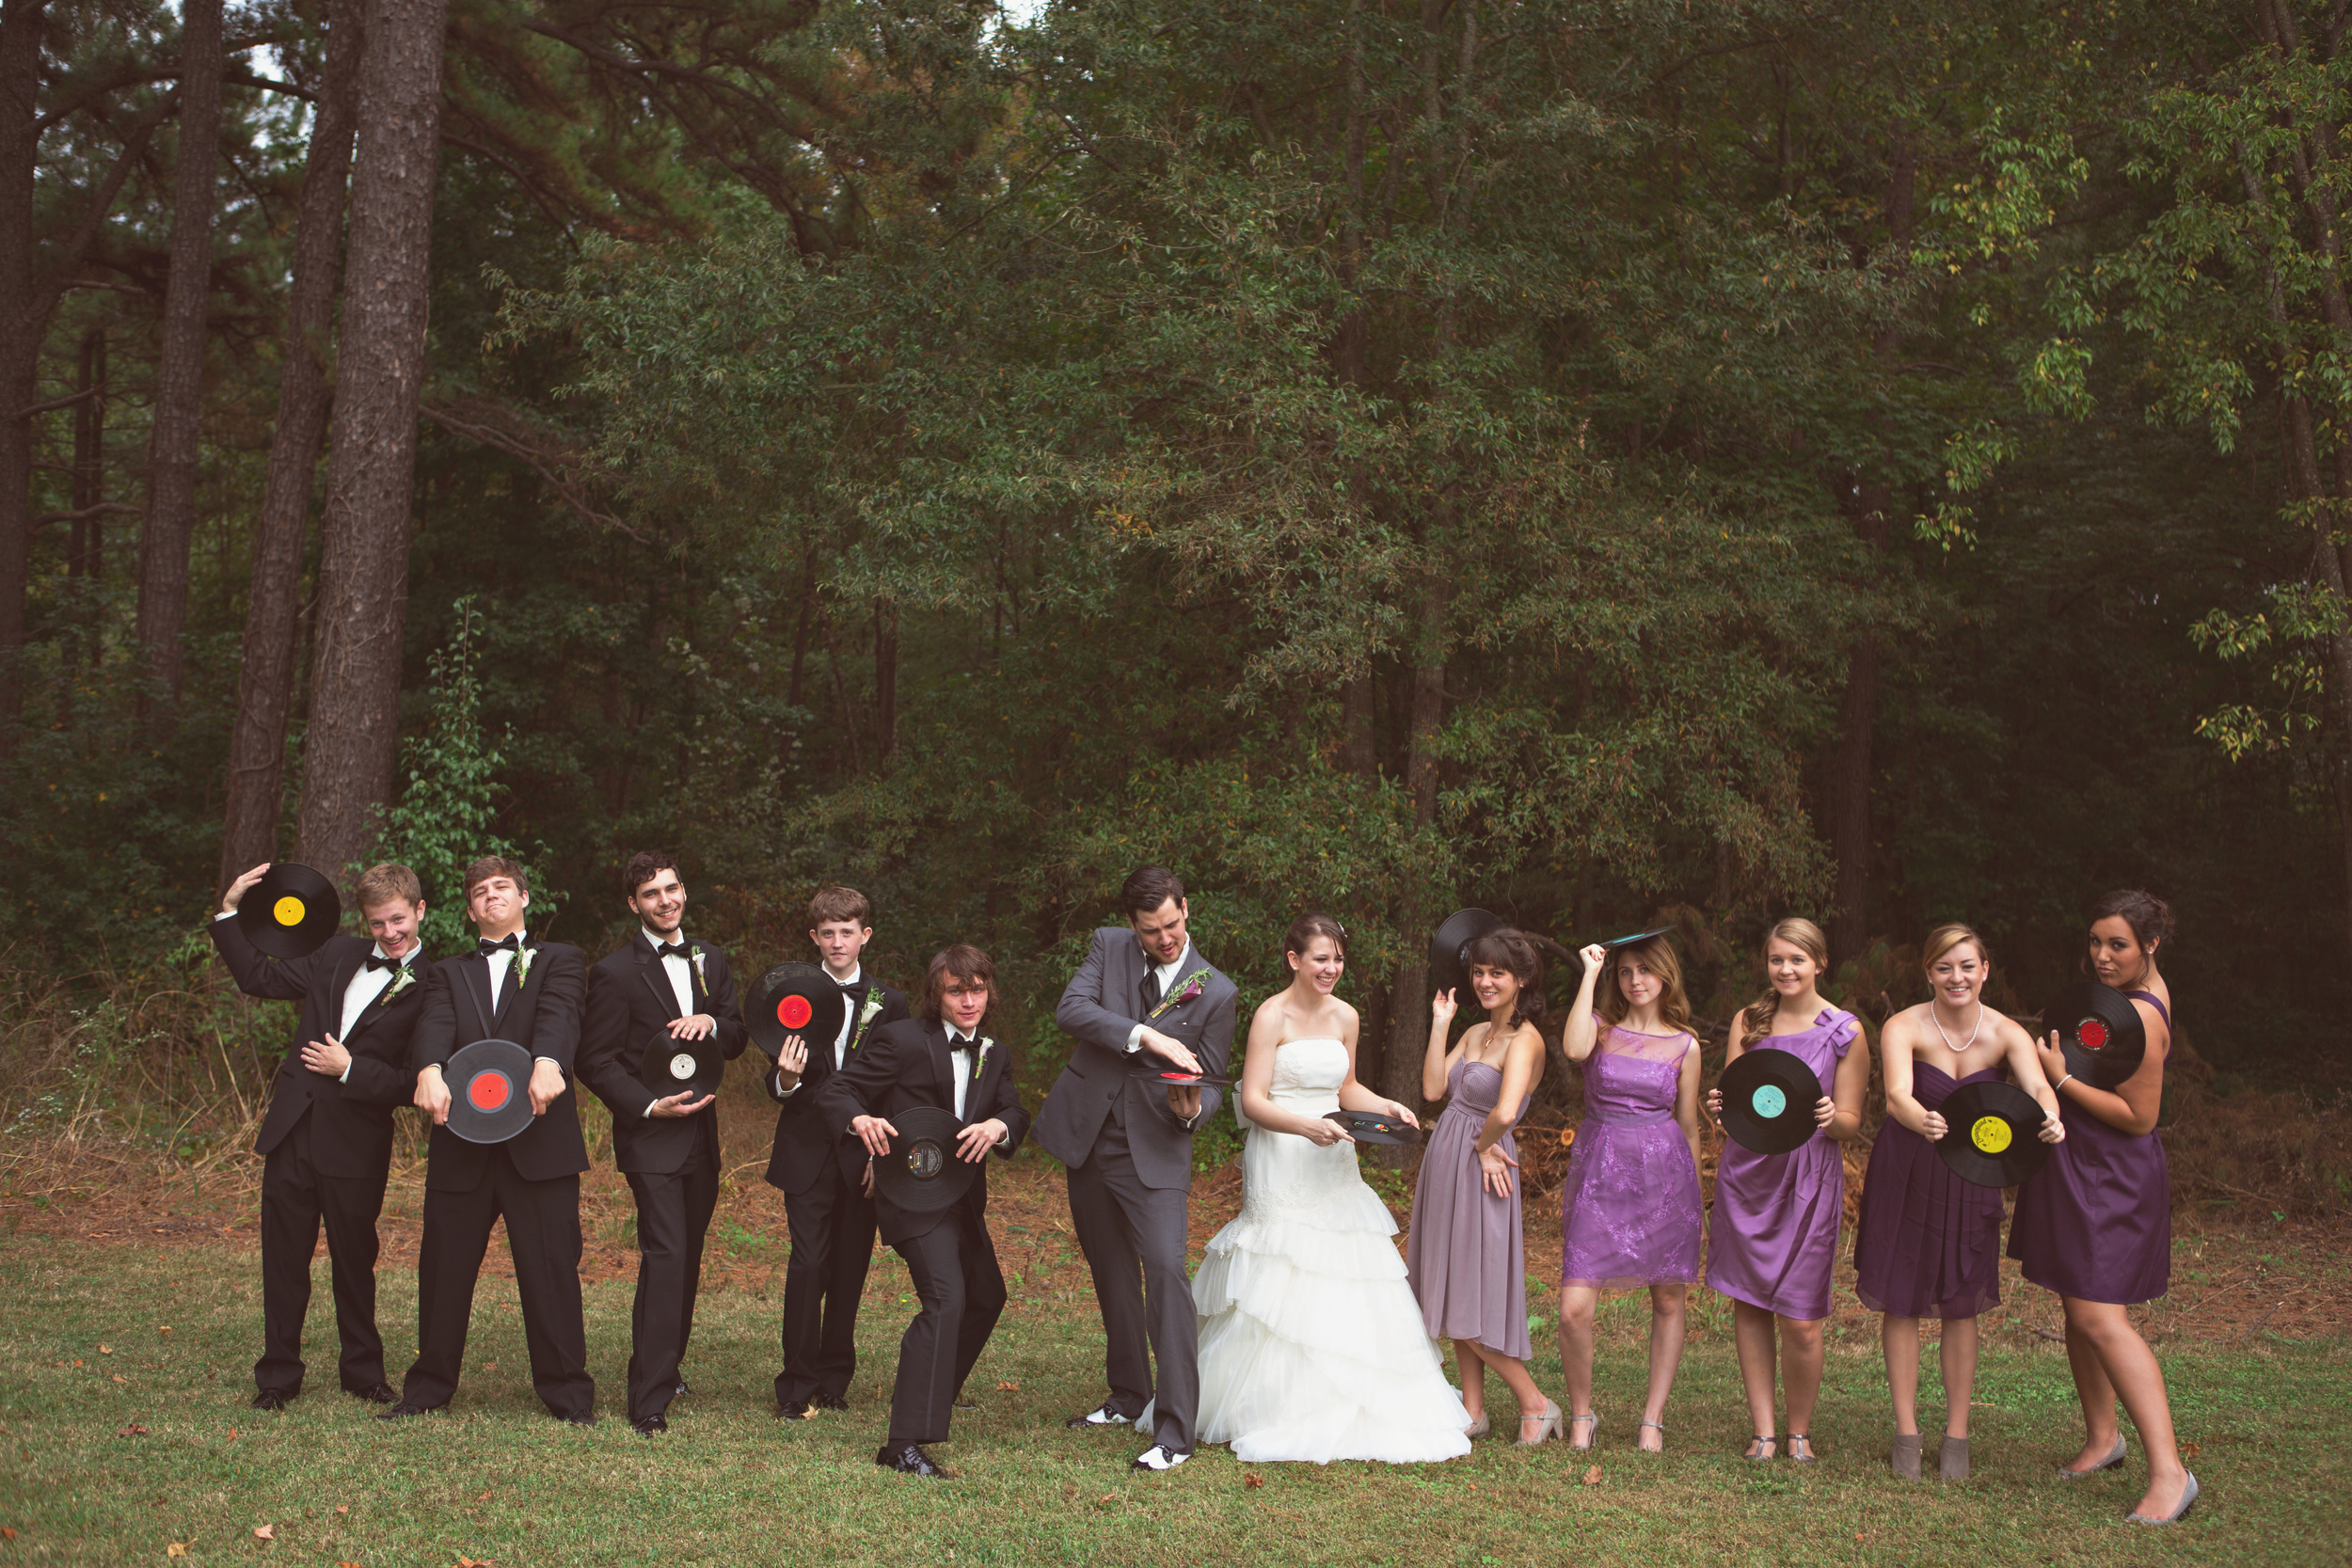 Revival Photography Playlist What We're Spinnin' Photo by Revival Photography